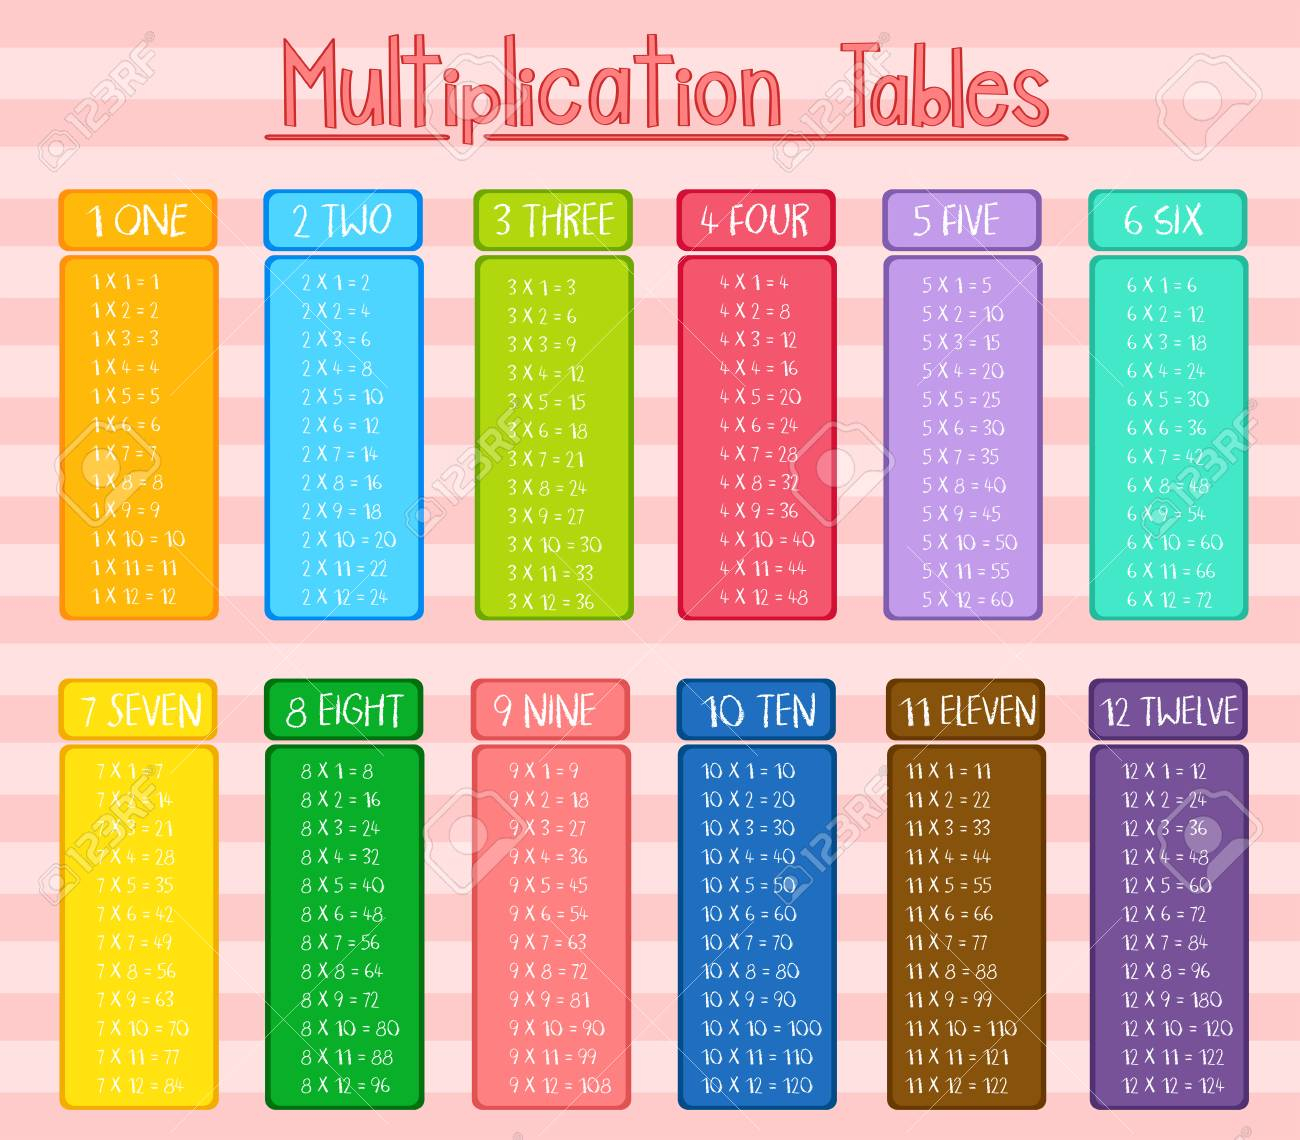 Colorful Multiplication Tables Poster Illustration